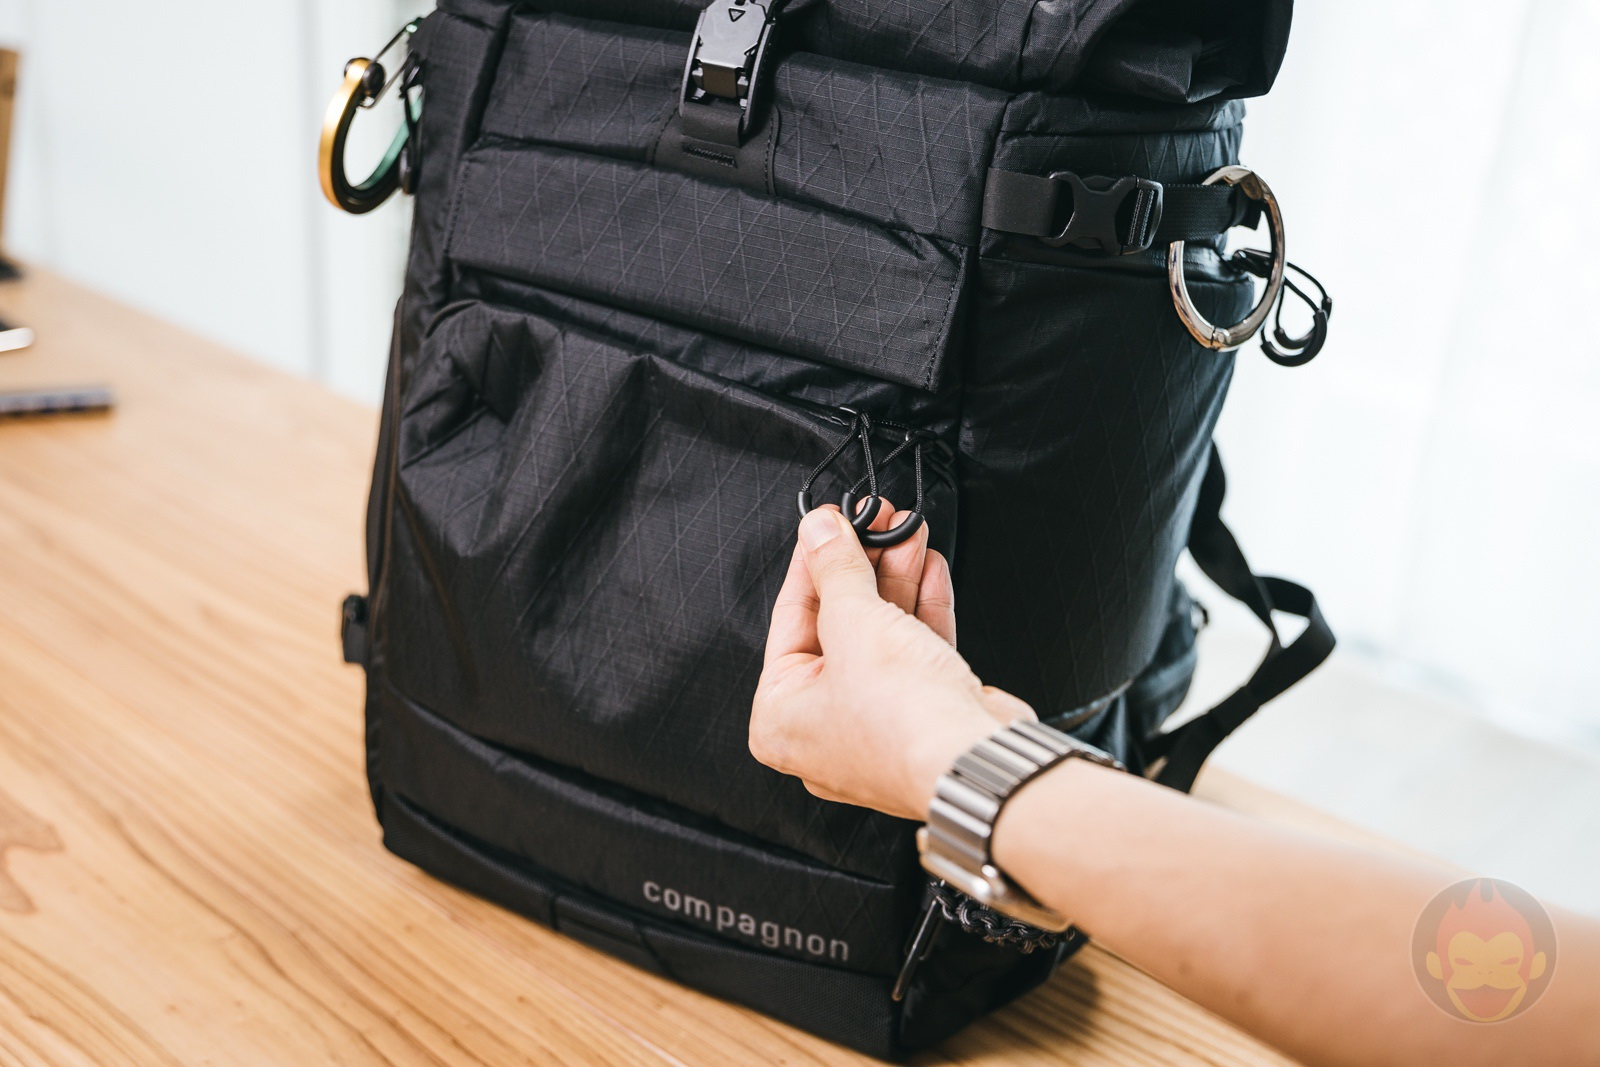 Compagnon element bacpack review 05